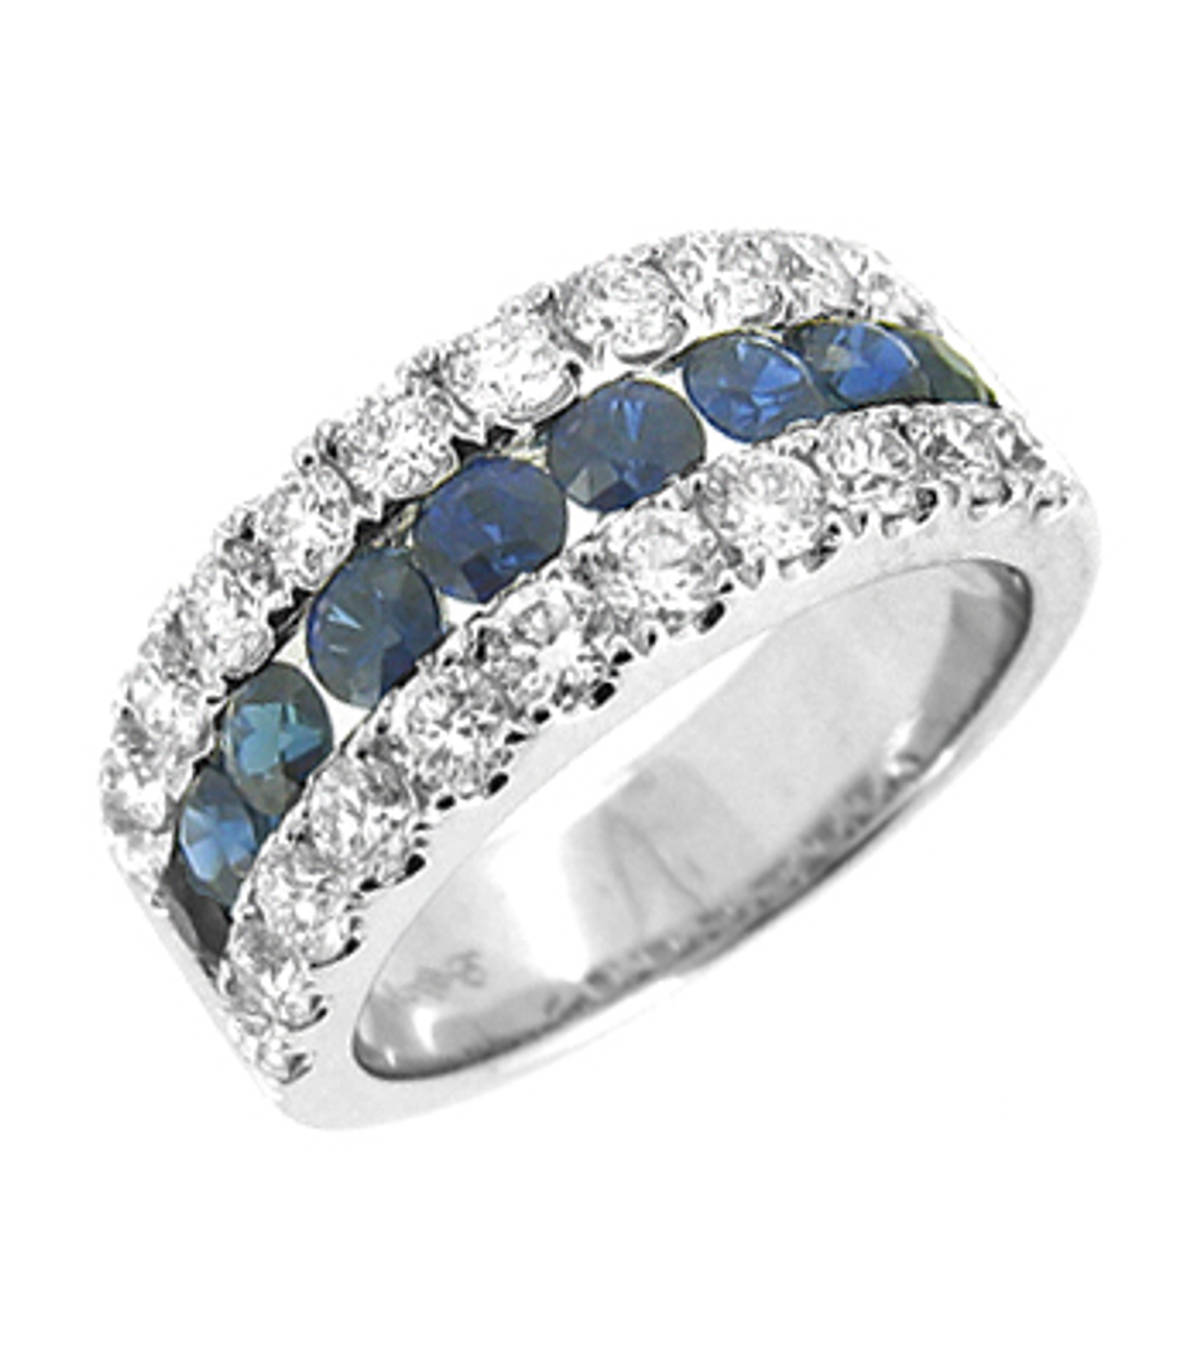 3 ROW SAPPHIRE & DIAMOND RING 18k white gold round sapphire and brilliant cut diamond 3 row cluster ringDETAILSdiamond total weight 1.44ctssapphire total weight1.21cts